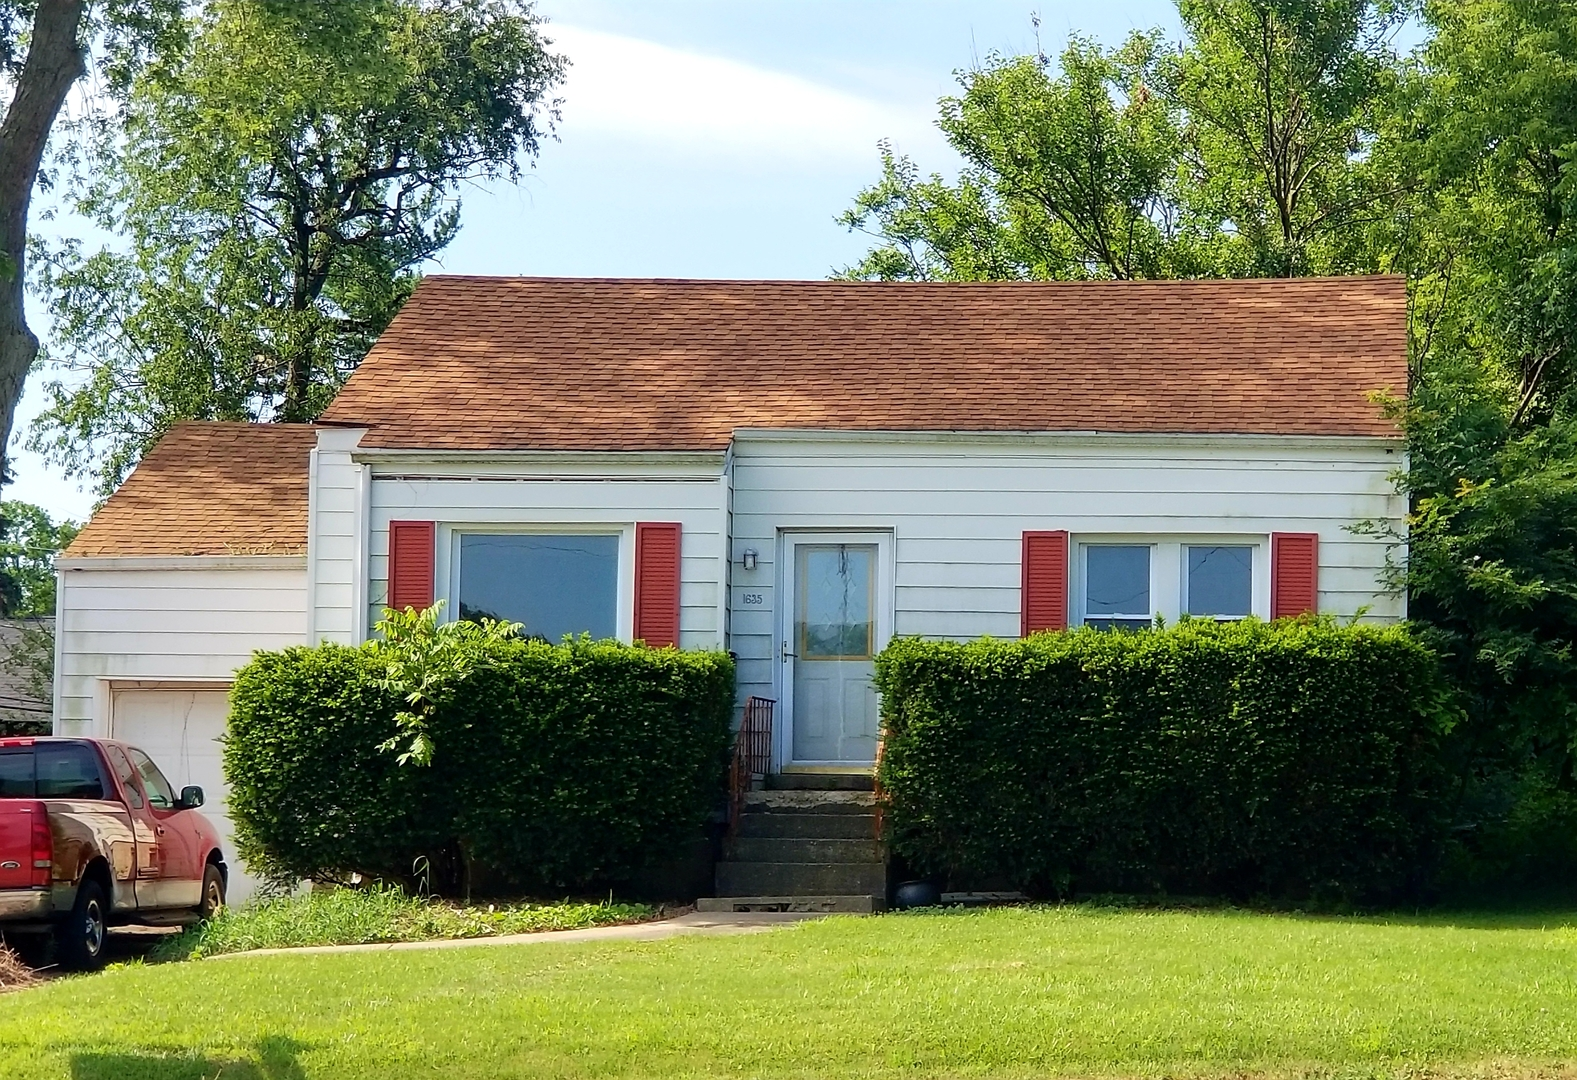 Photo for 1635 Maple Avenue, Downers Grove, IL 60515 (MLS # 10542483)